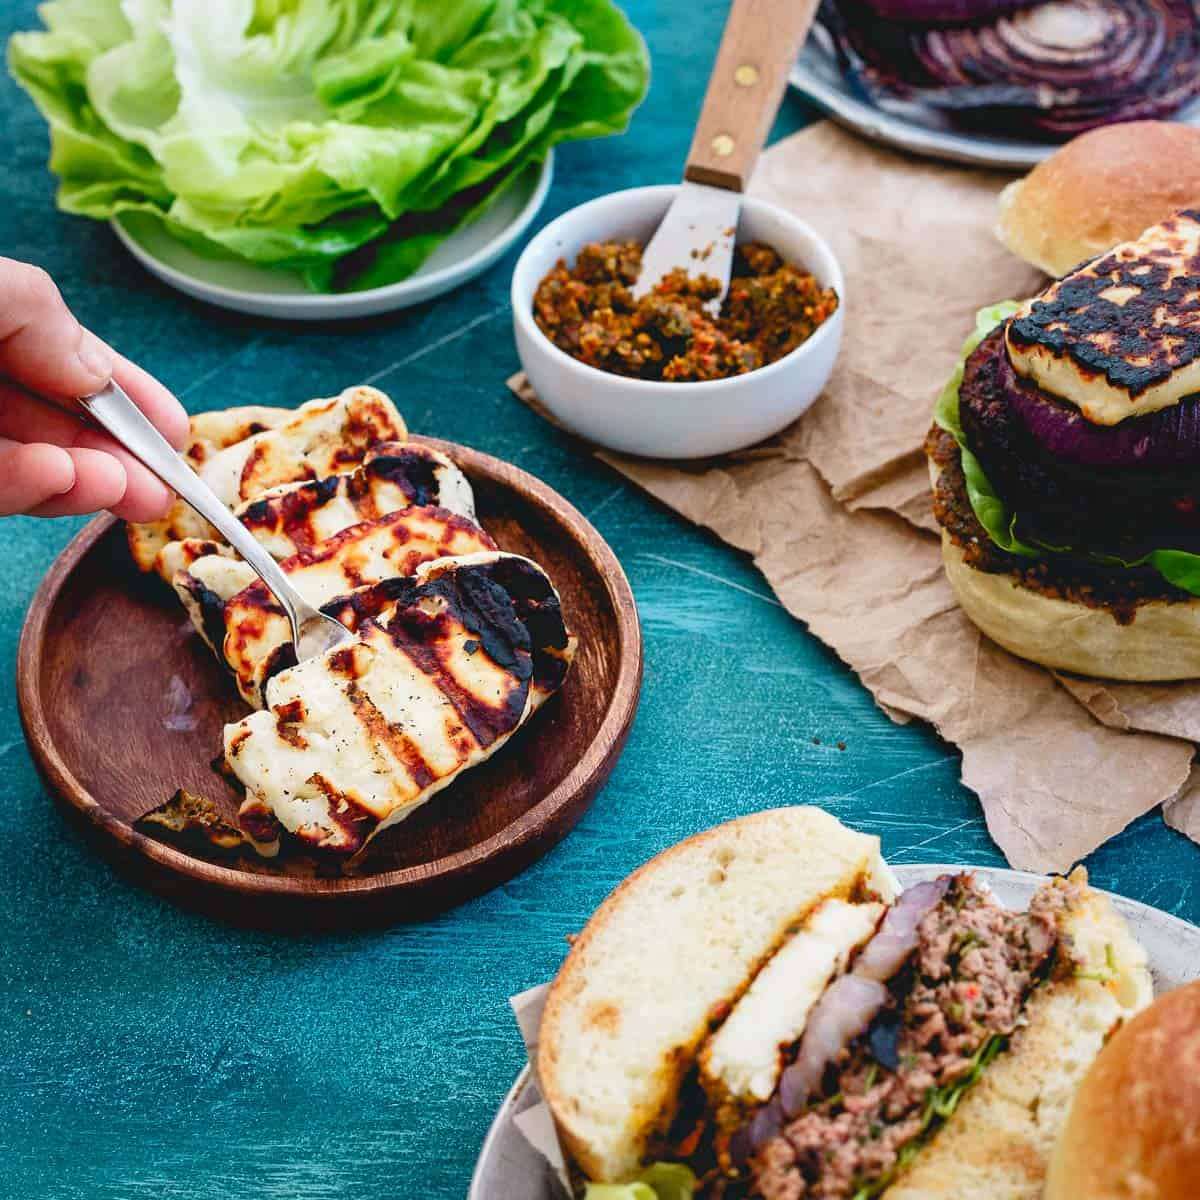 Add some grilled halloumi cheese to your lamb burger for a delicious salty savory bite.